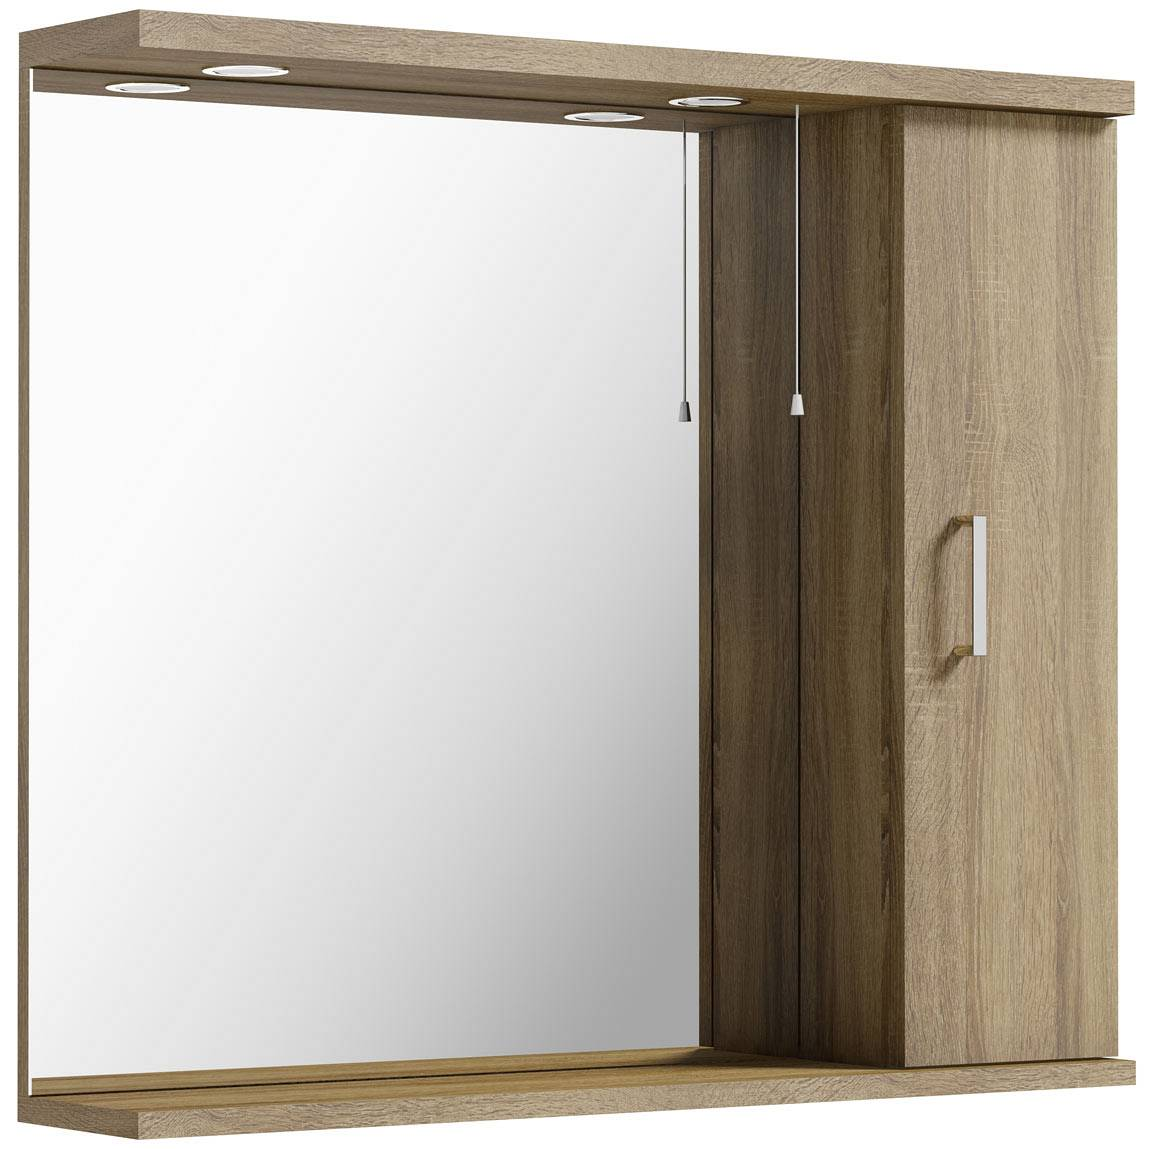 Image of Sienna Oak 85 Mirror with lights